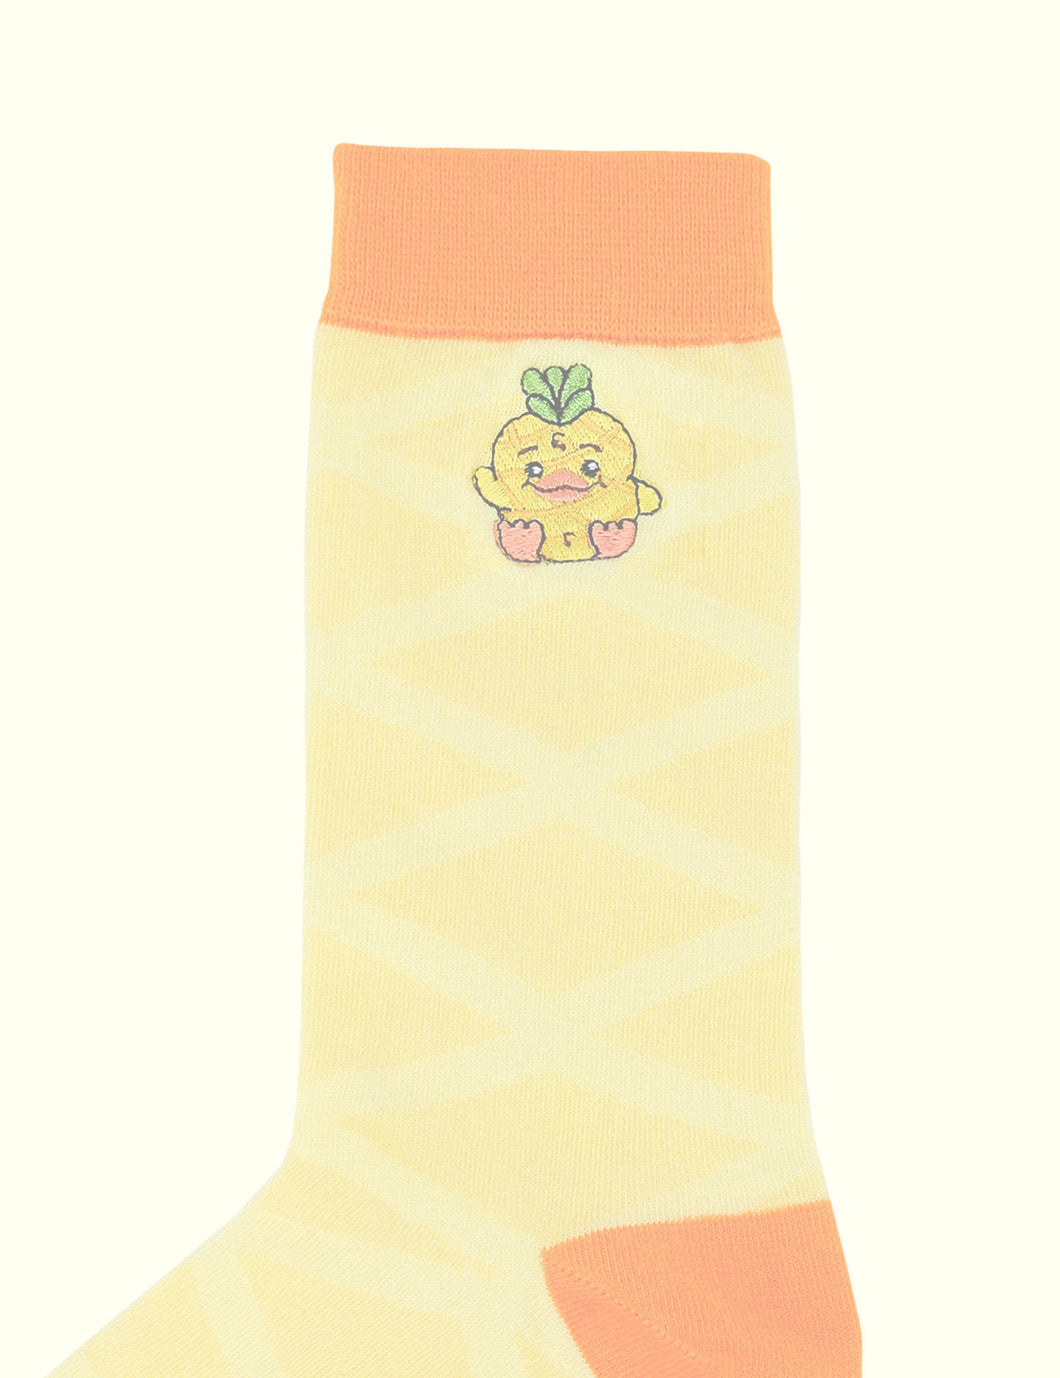 Georgie Socks (Sold Out)